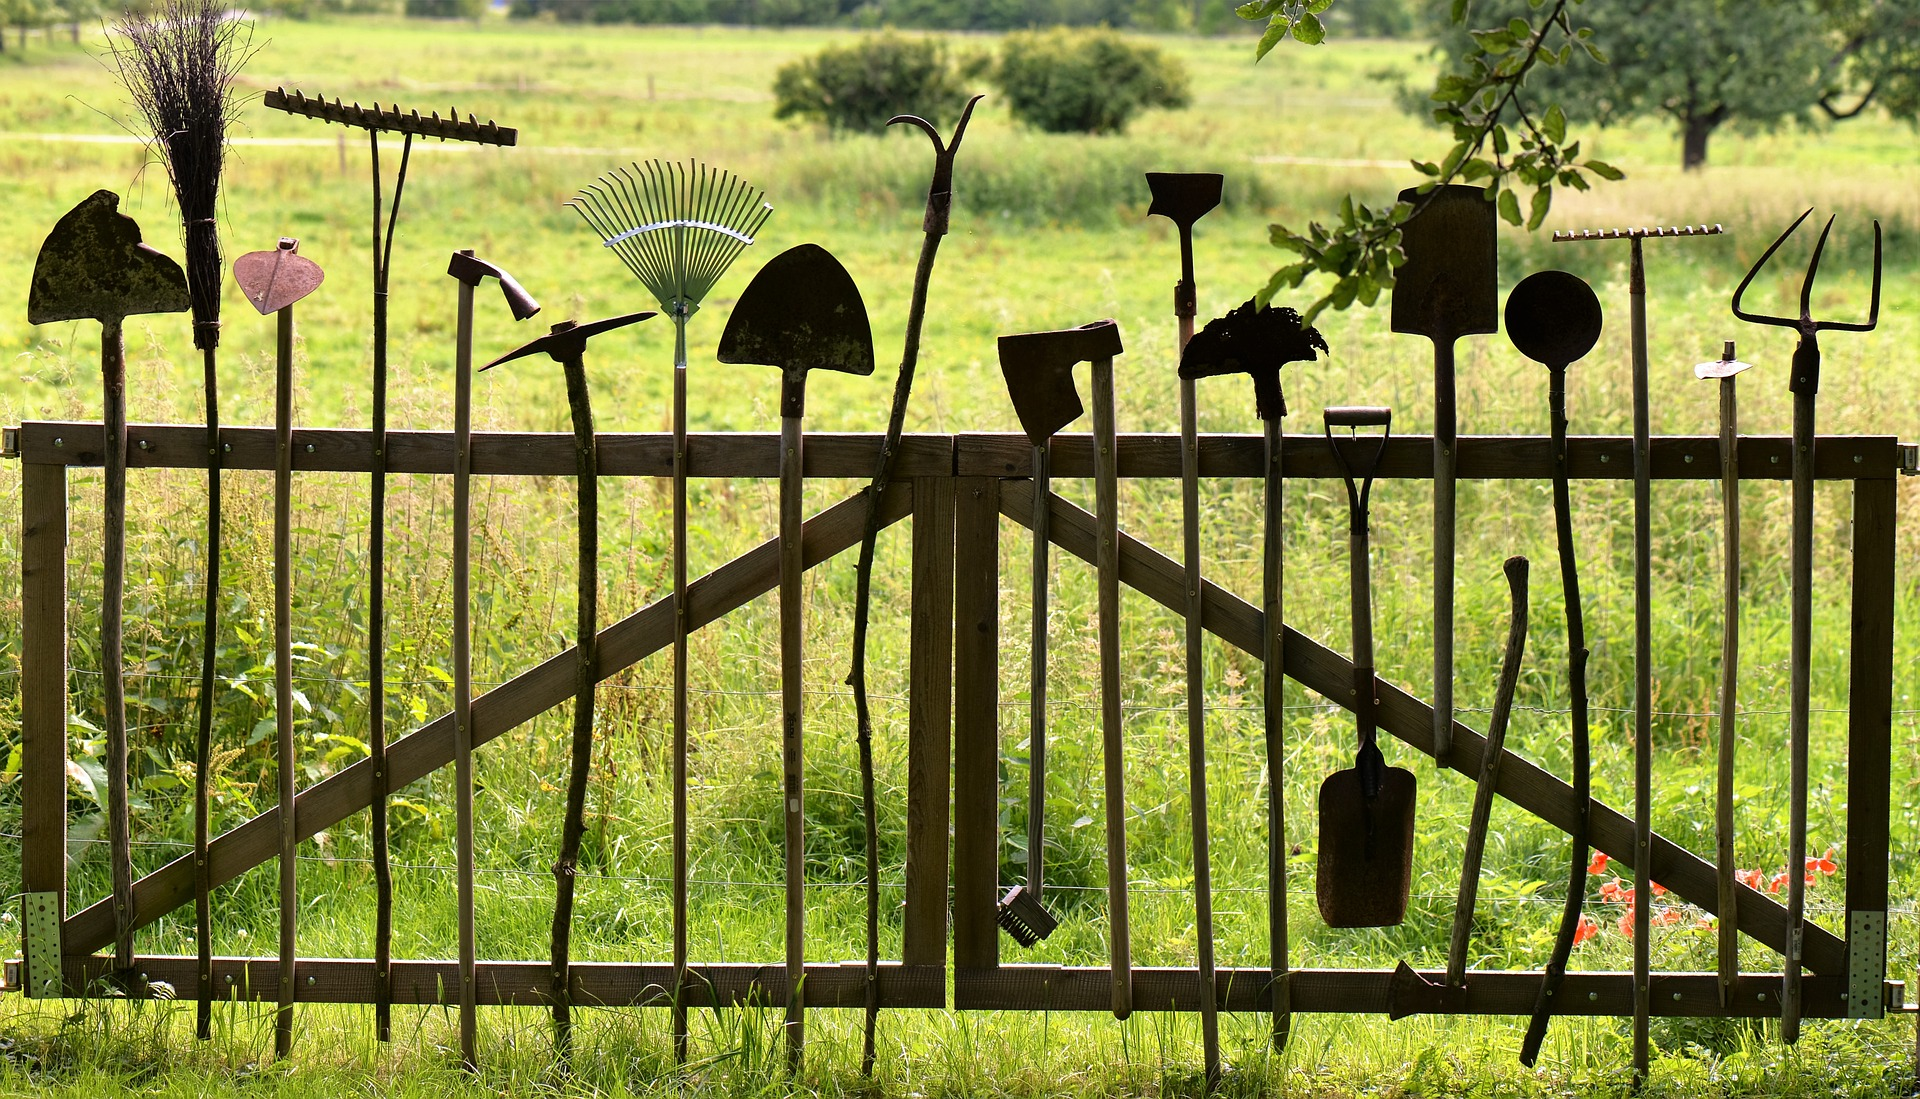 A row of various garden tools hanging from a fence